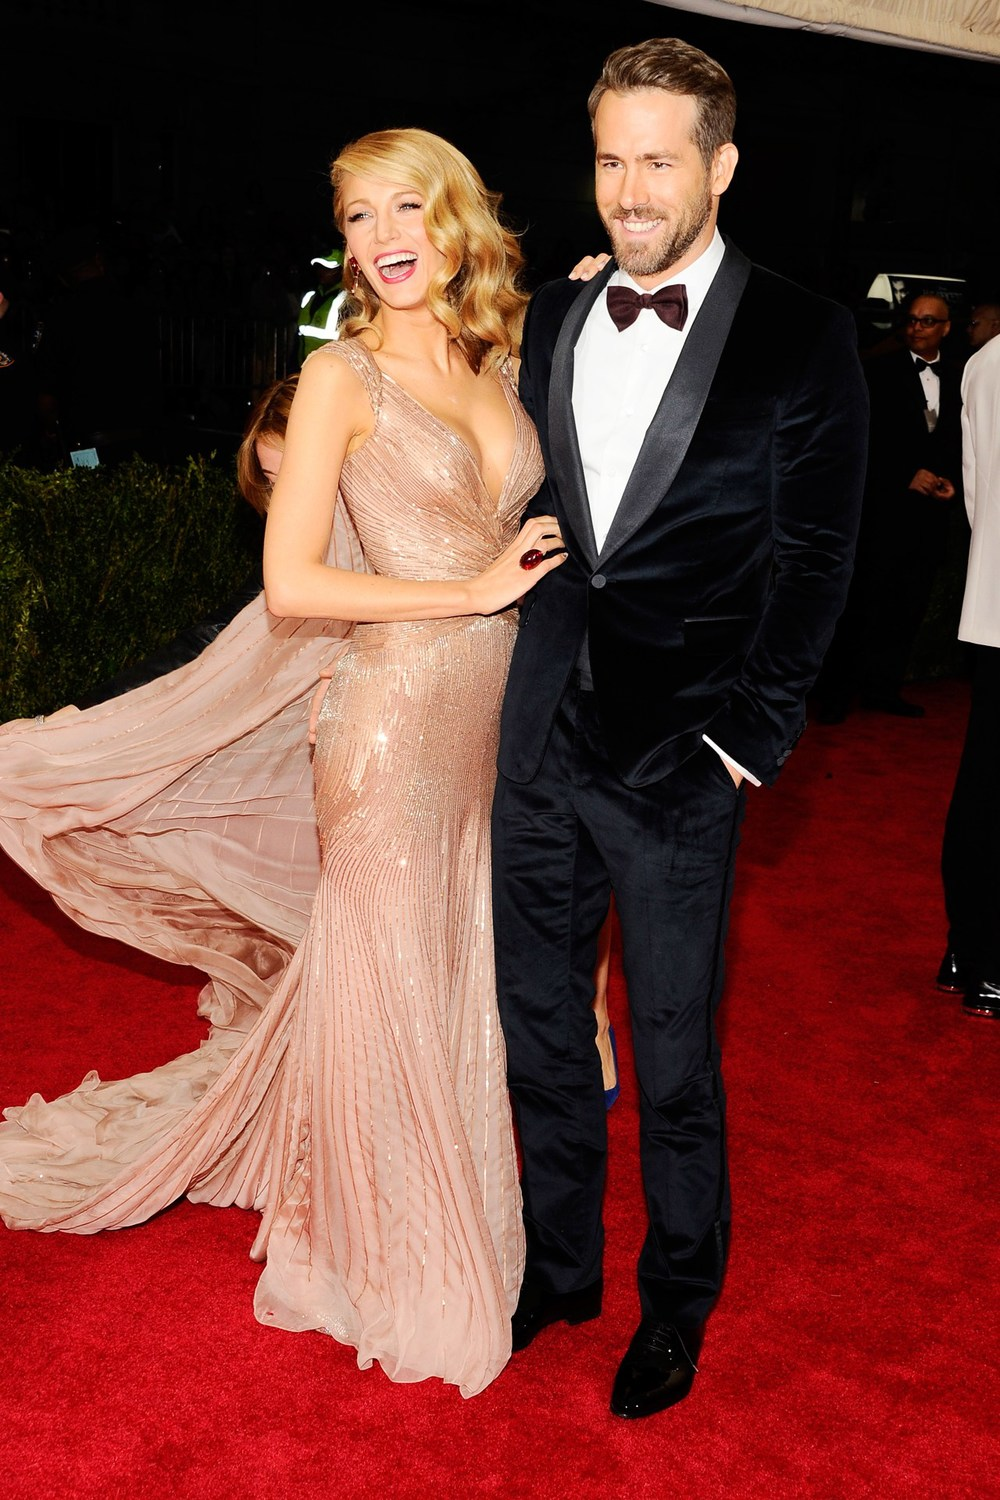 Blake Lively and Ryan Reynolds - both dressed by Gucci.